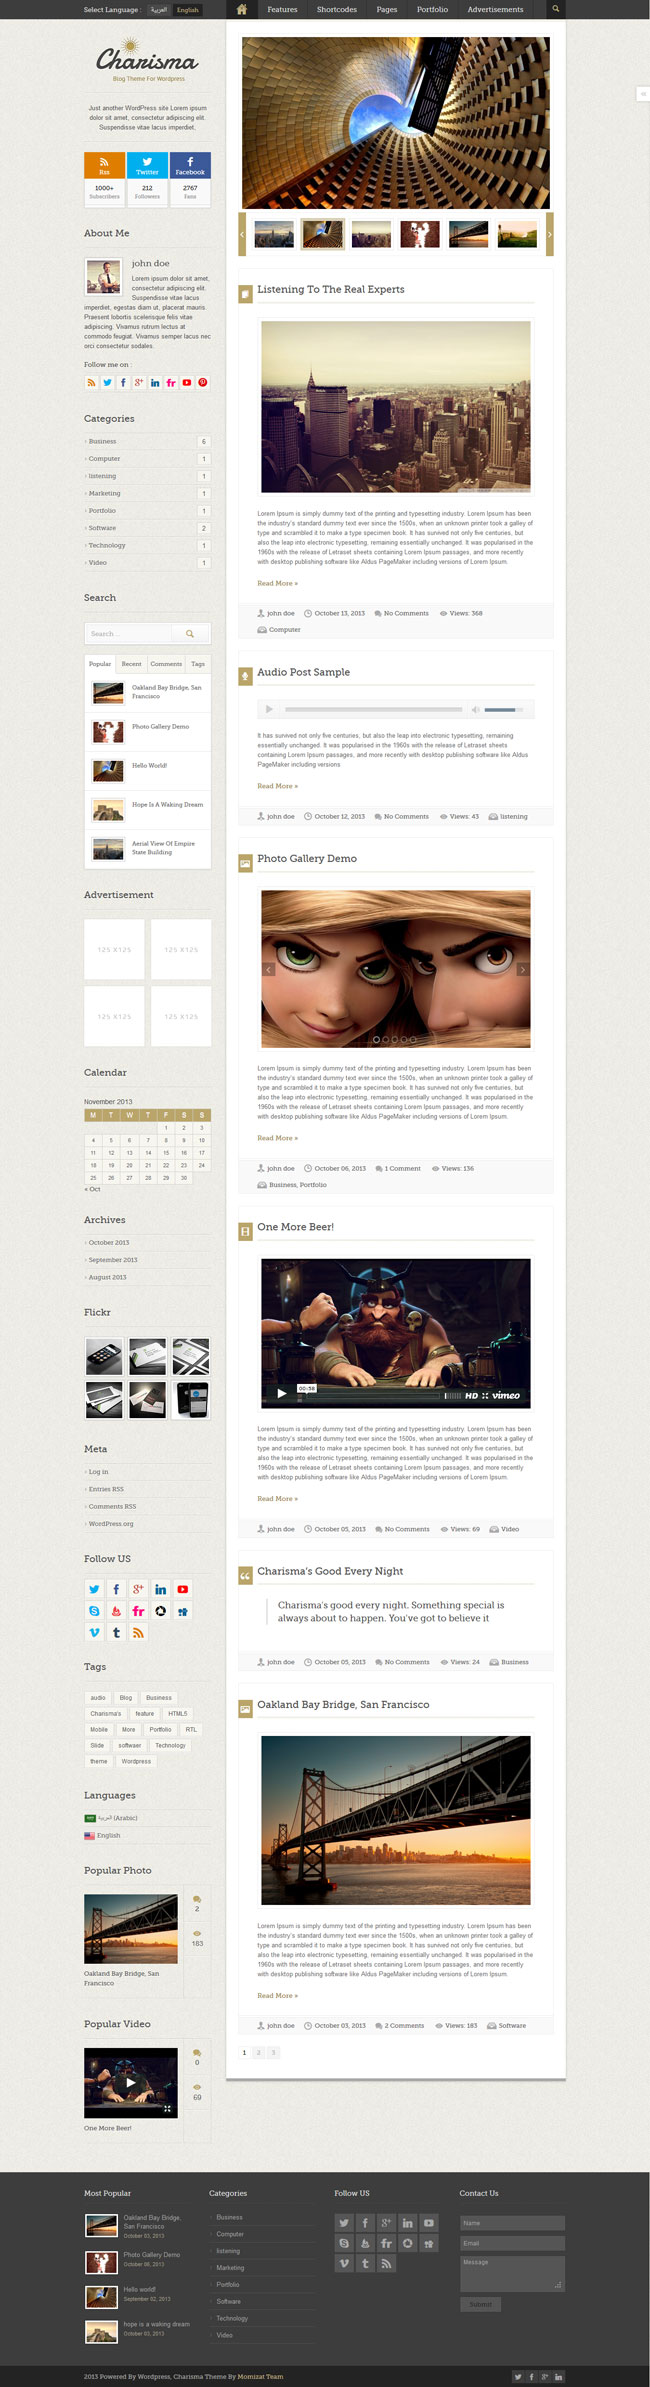 Charisma - Premium WordPress Blog Theme